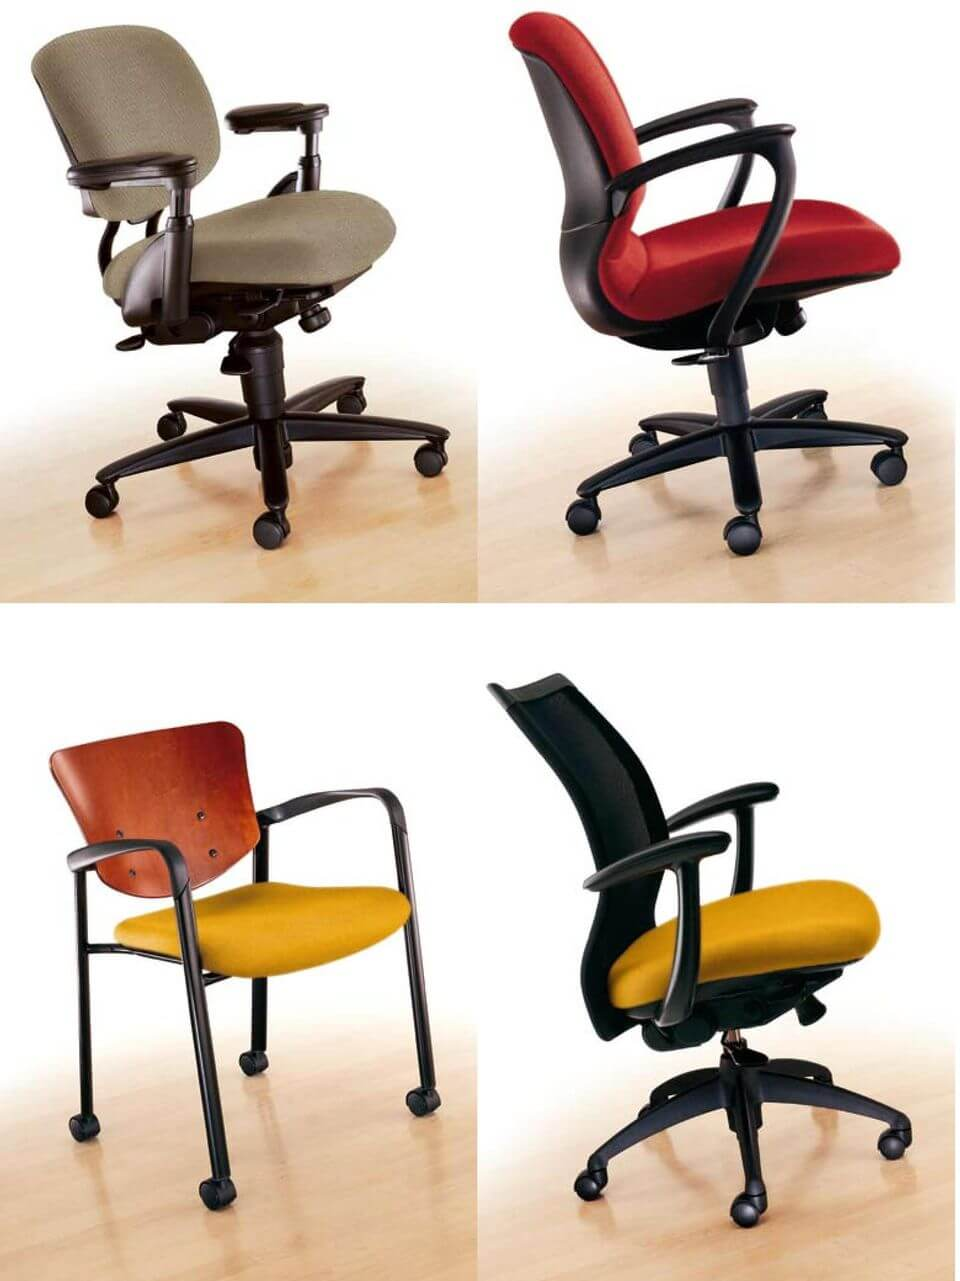 haworth improv chair Care and Maintenance